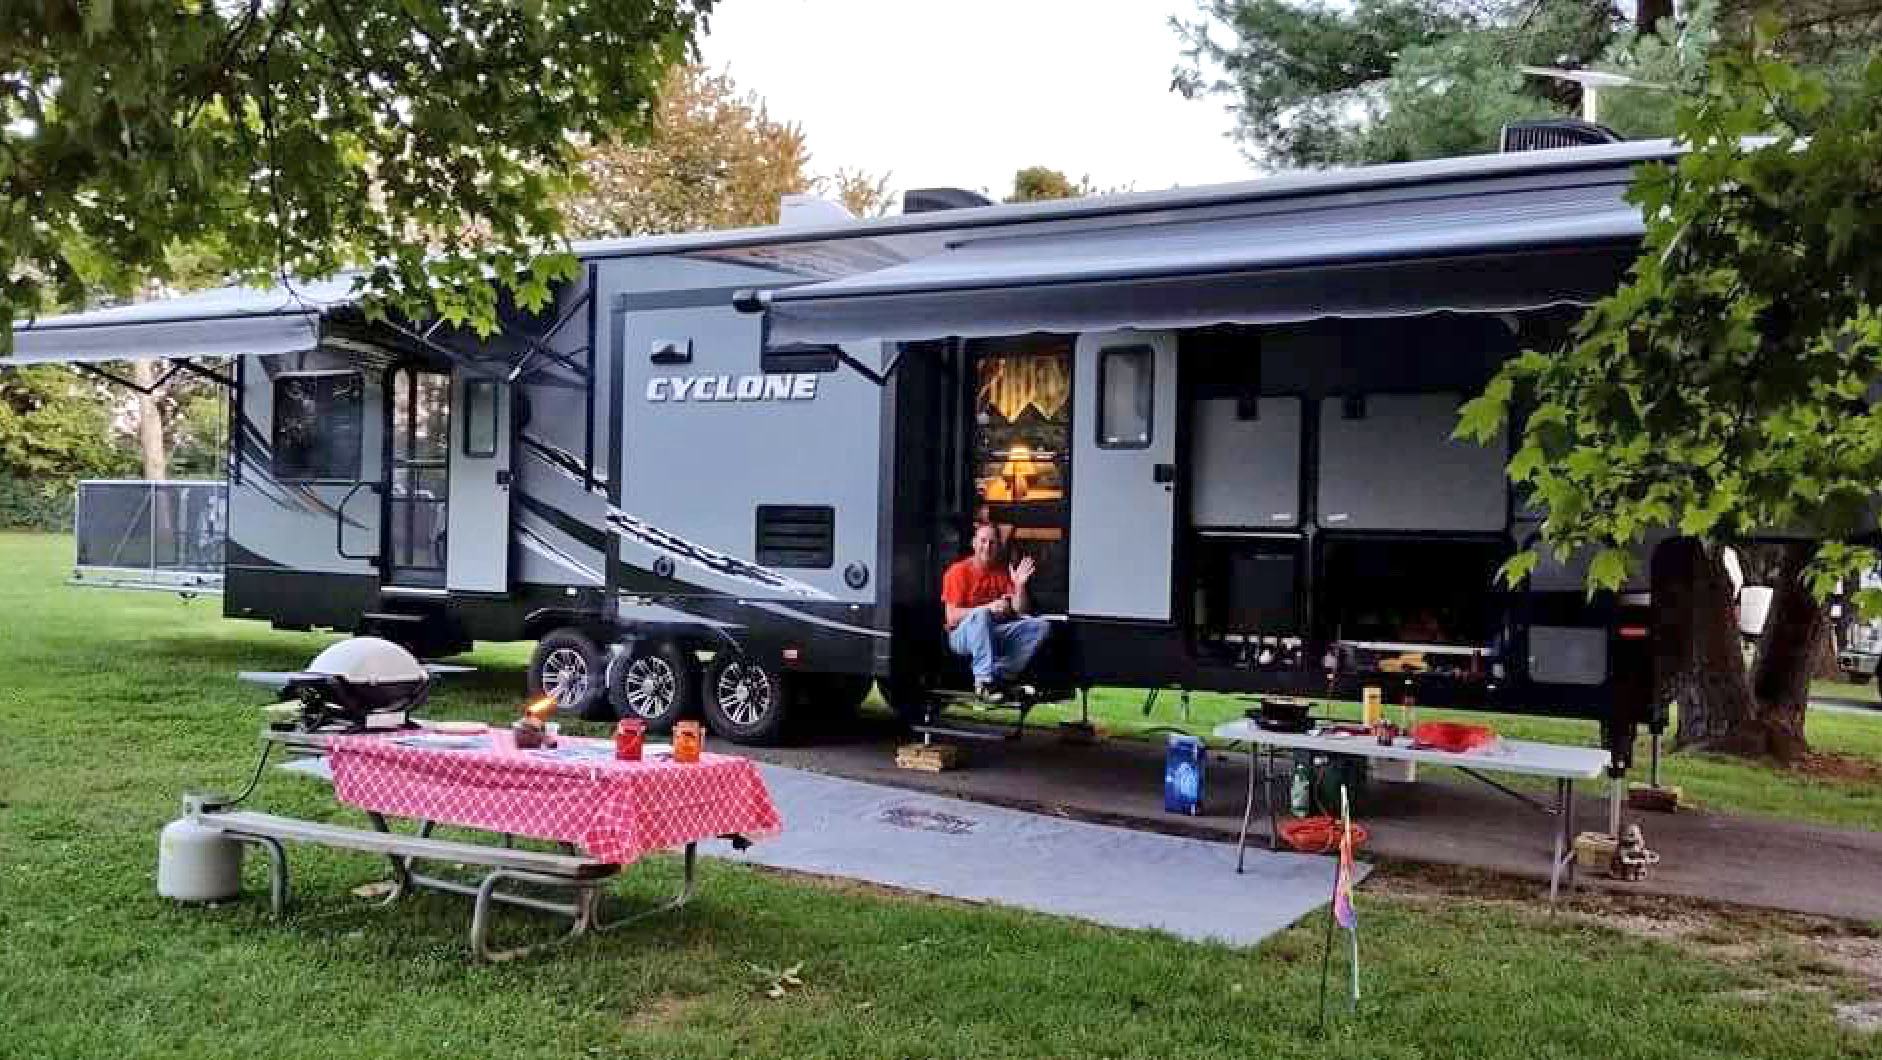 A Comprehensive Check List For Your Next RV Camping Trip